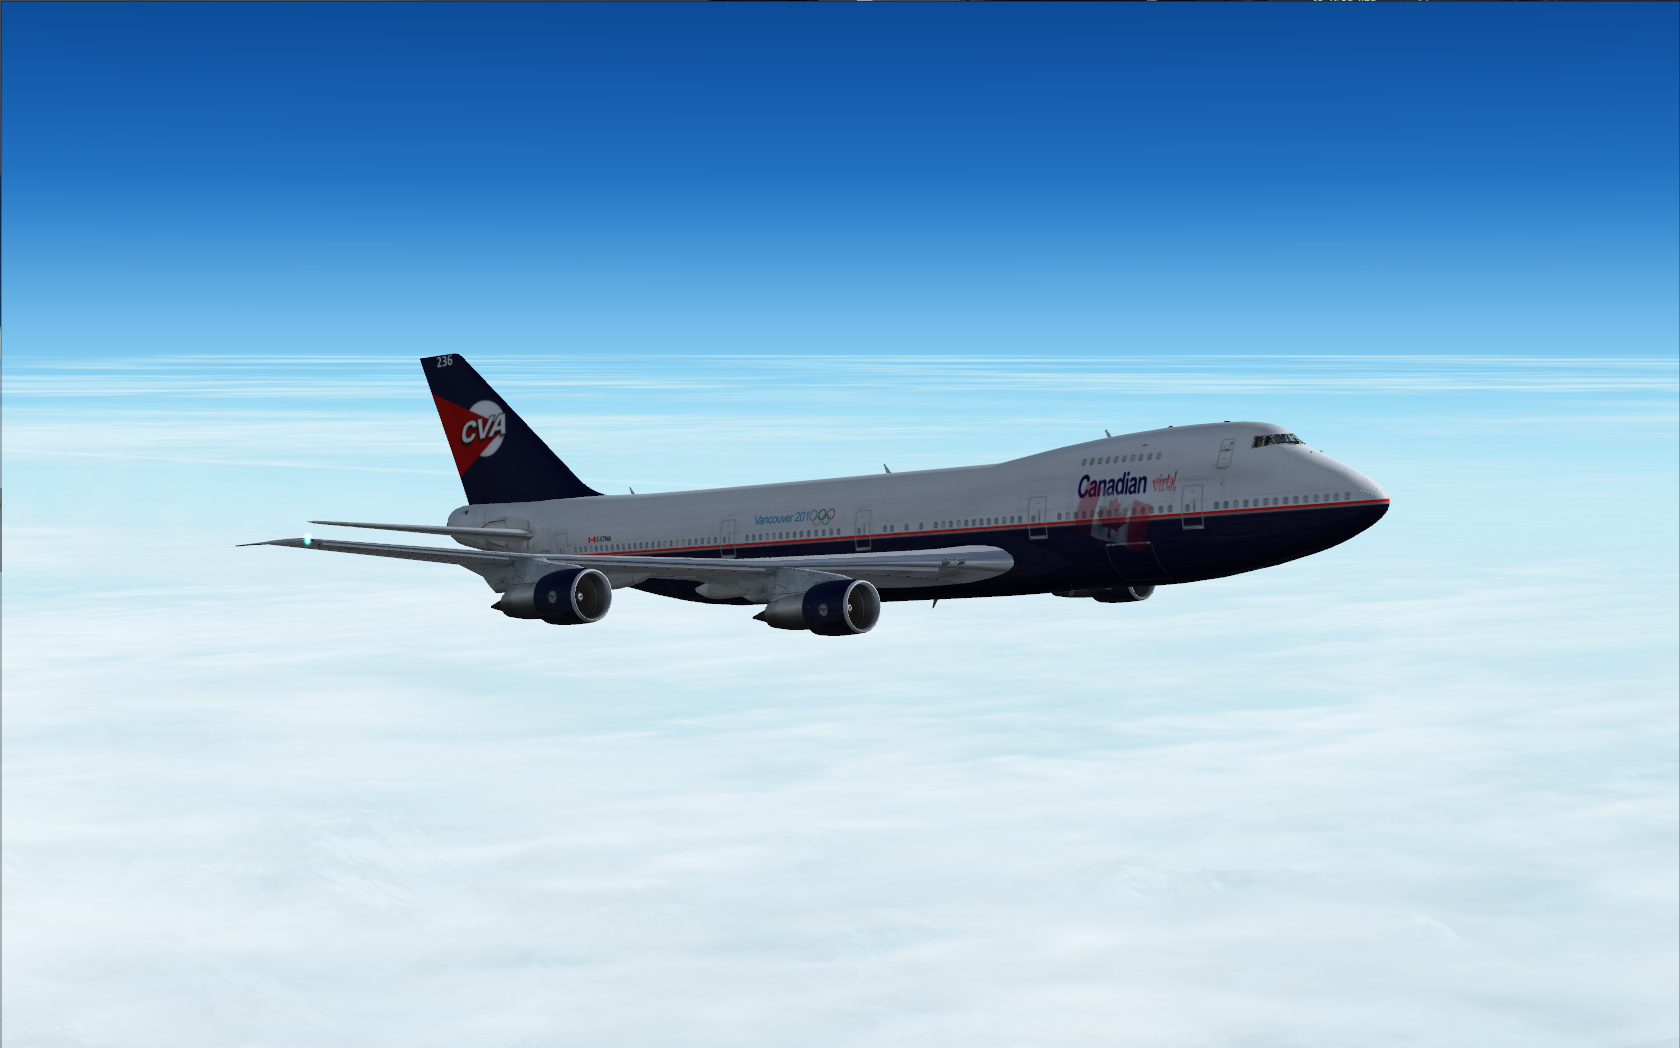 Cruising over CYEG in CLS 747-200.